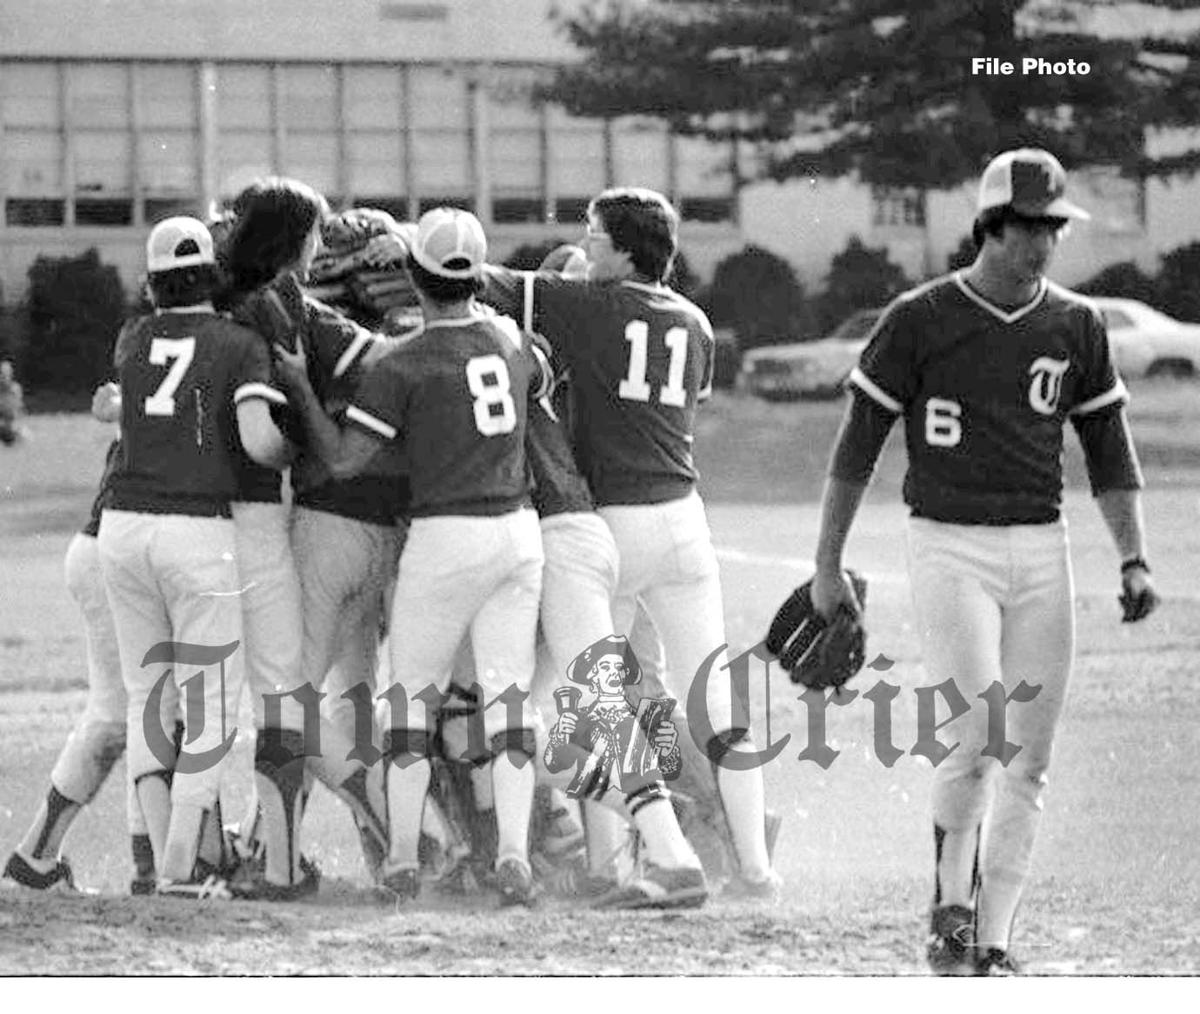 1980 TMHS Baseball team celebrates qualifiyng for state tournament